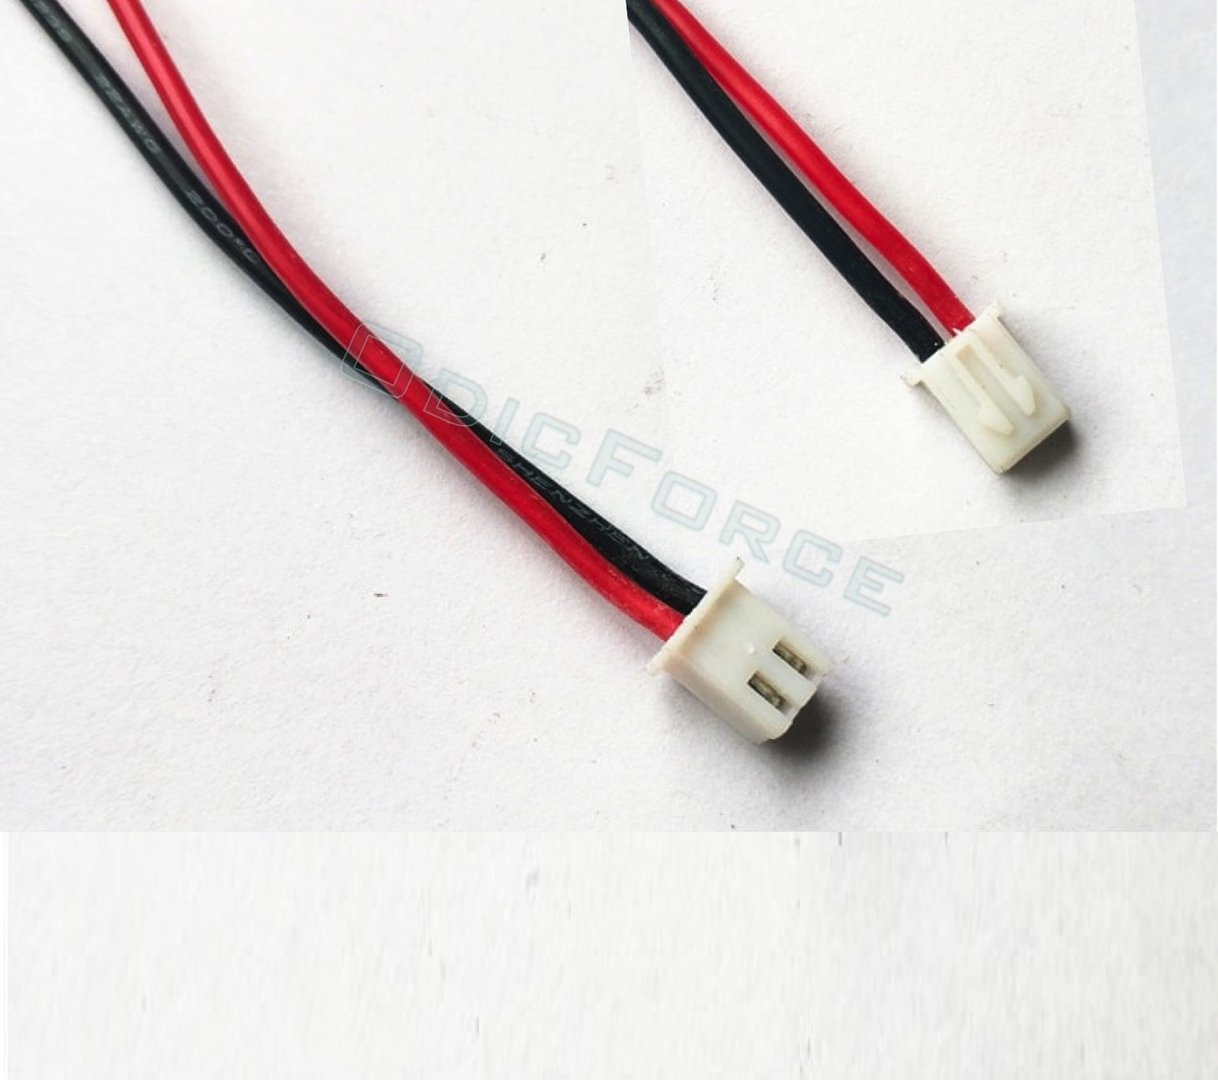 JST-XH Connector Cable 20cm 22awg Silicone